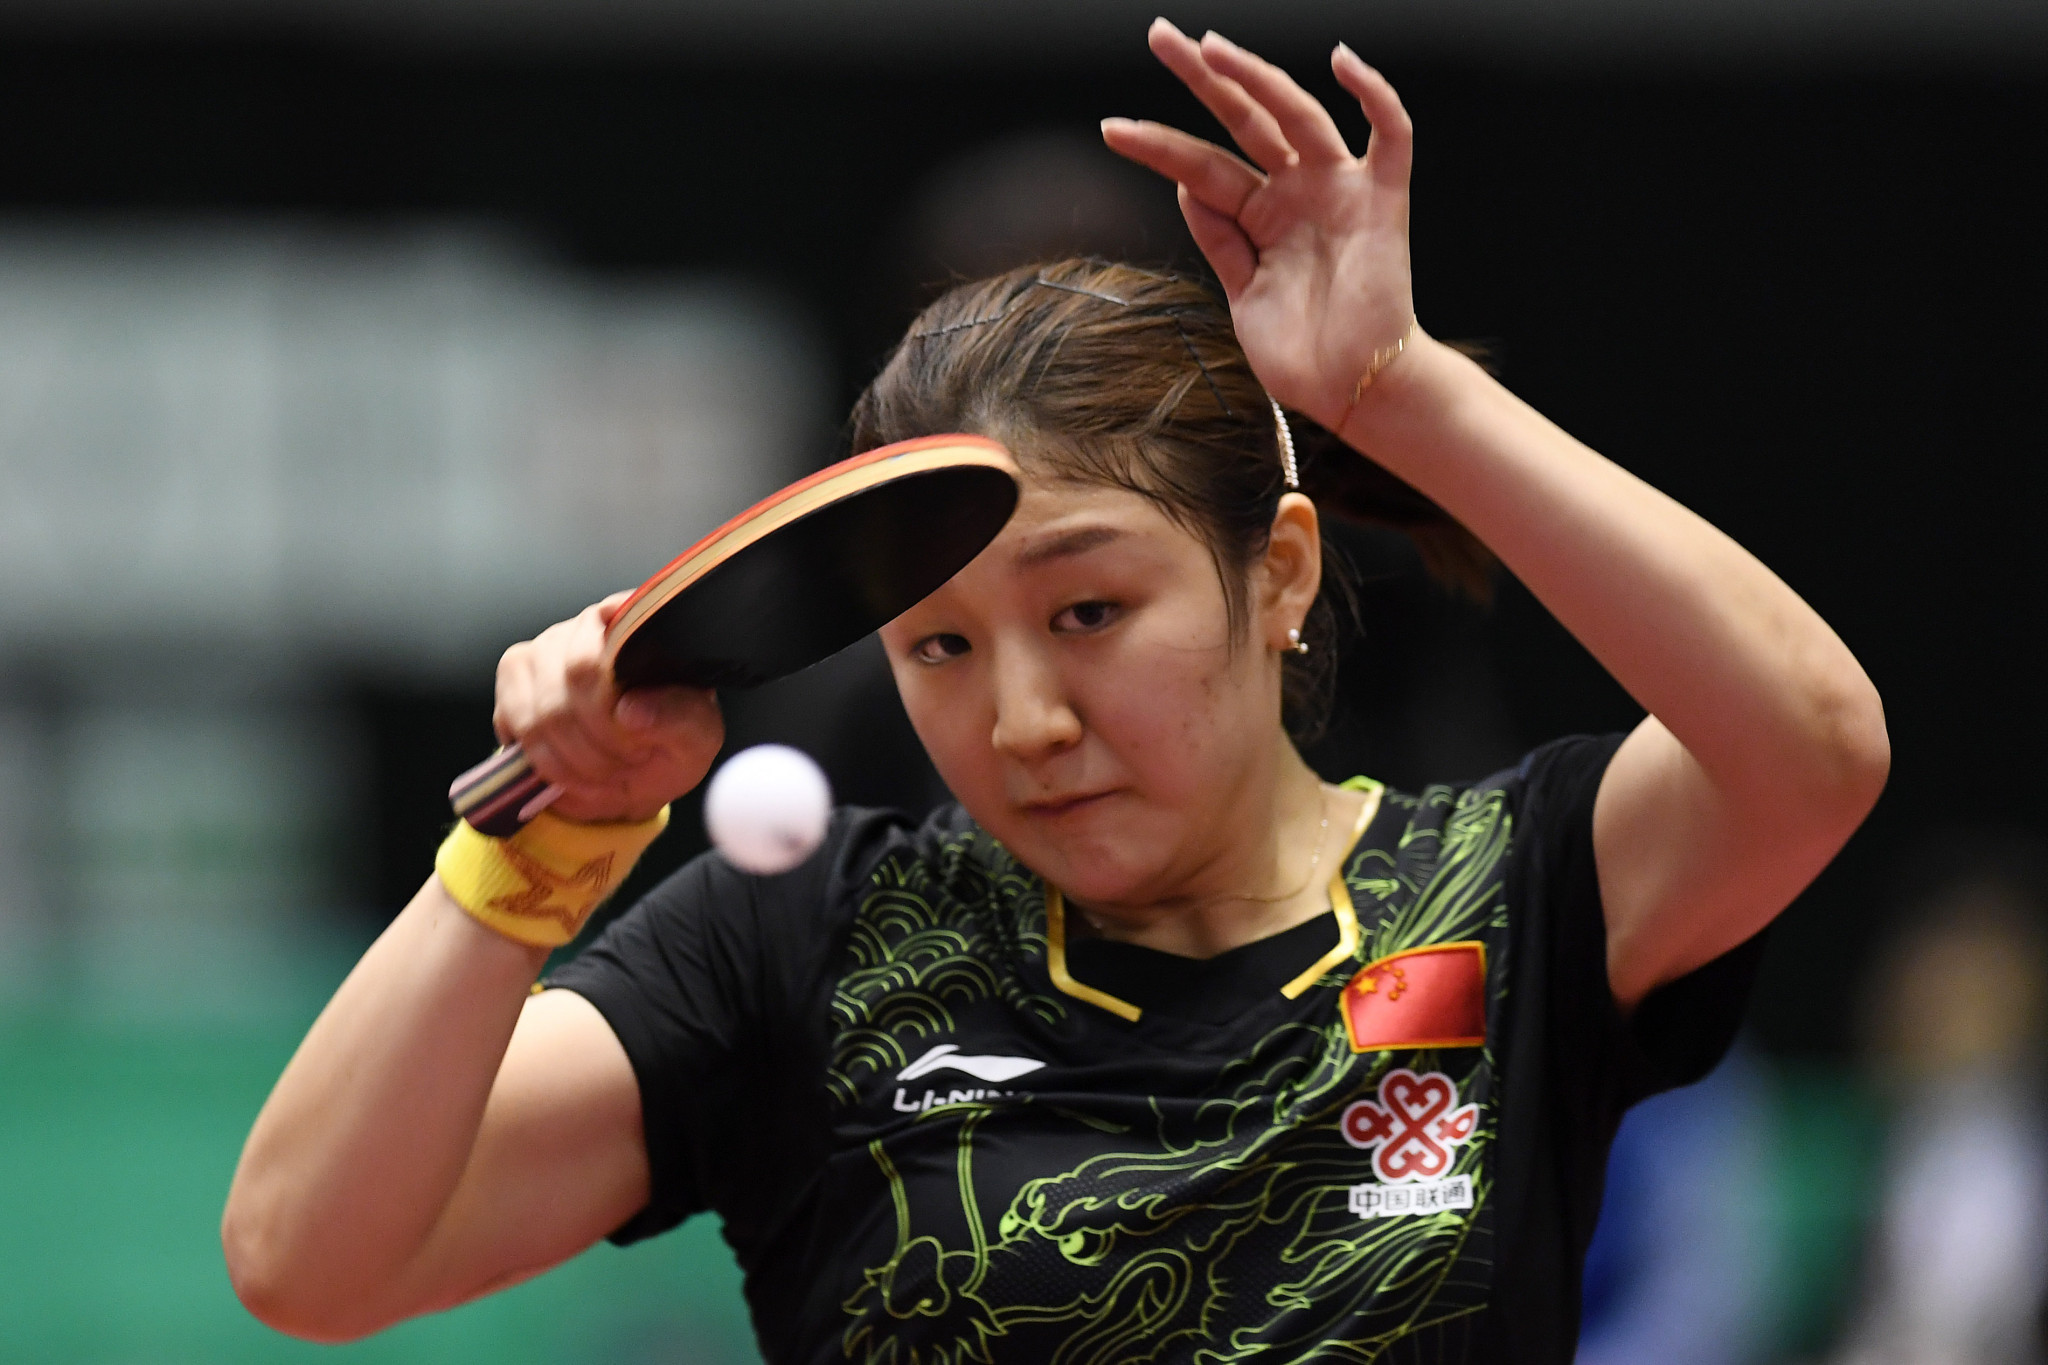 Chen aiming for third title of the season at ITTF Austrian Open